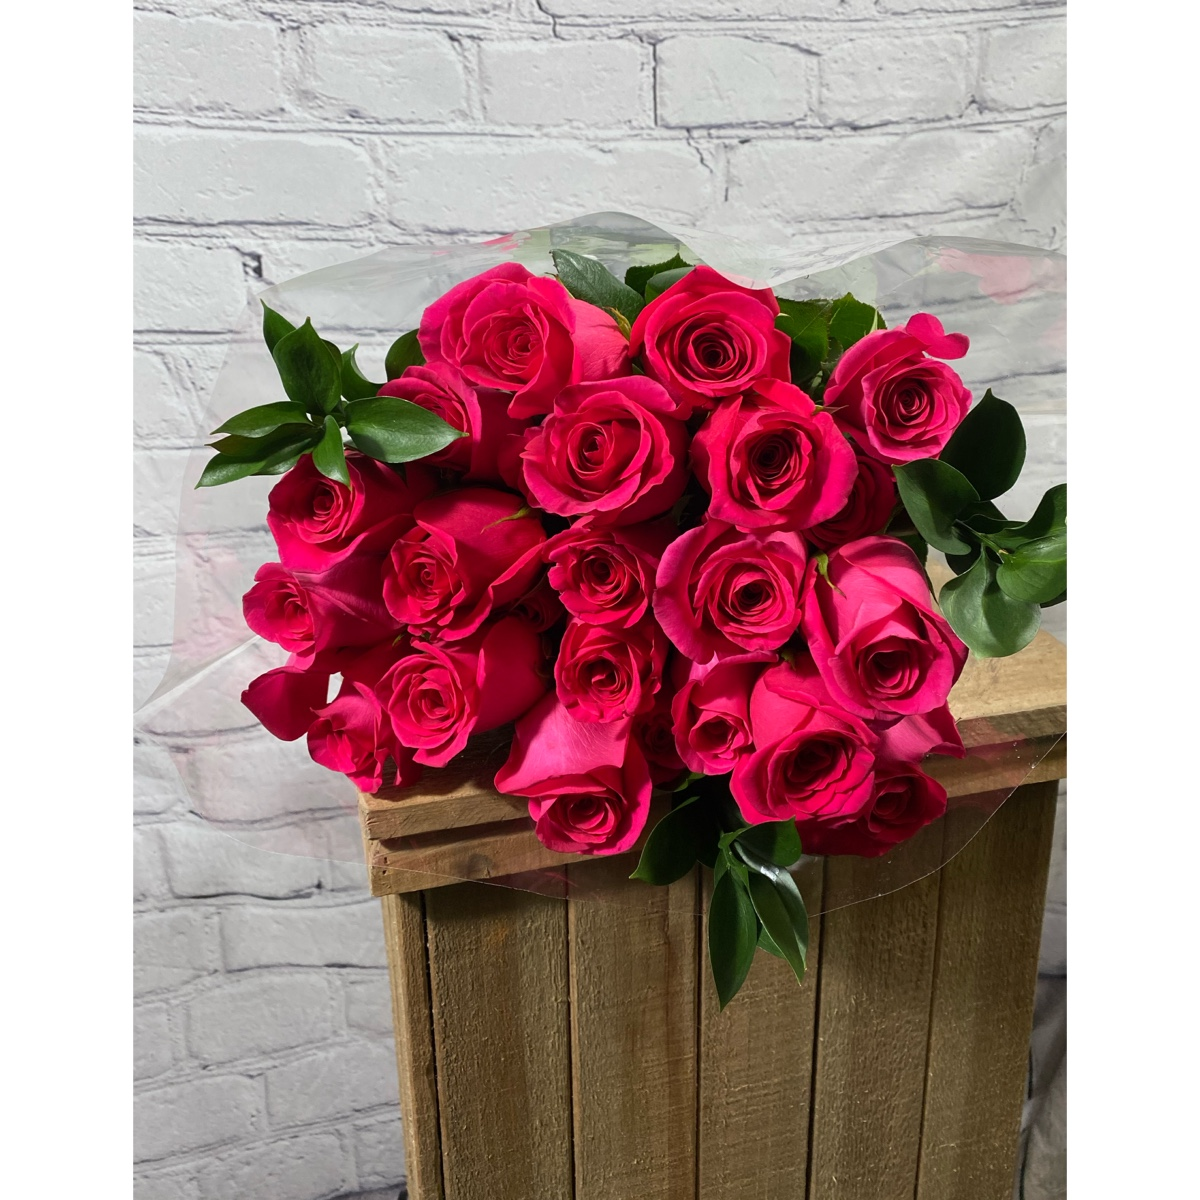 2 Dozen Fresh Cut Roses This weeks Special is Pink Floyd. Vase Ready Bouquet